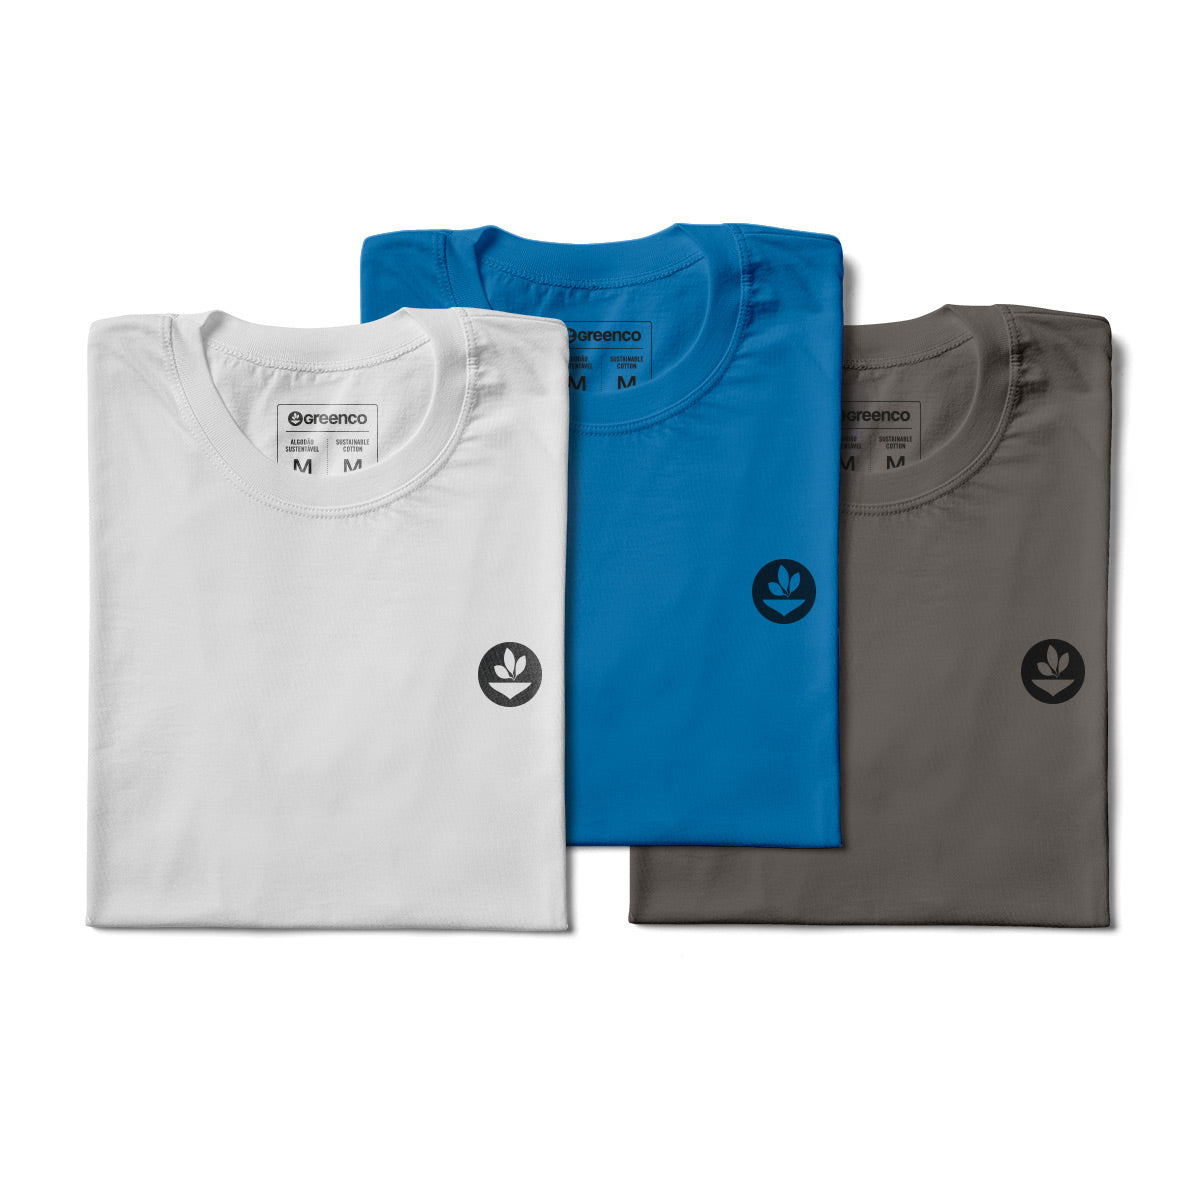 Basic Men's Kit Sustainable Cotton - 3 t-shirts